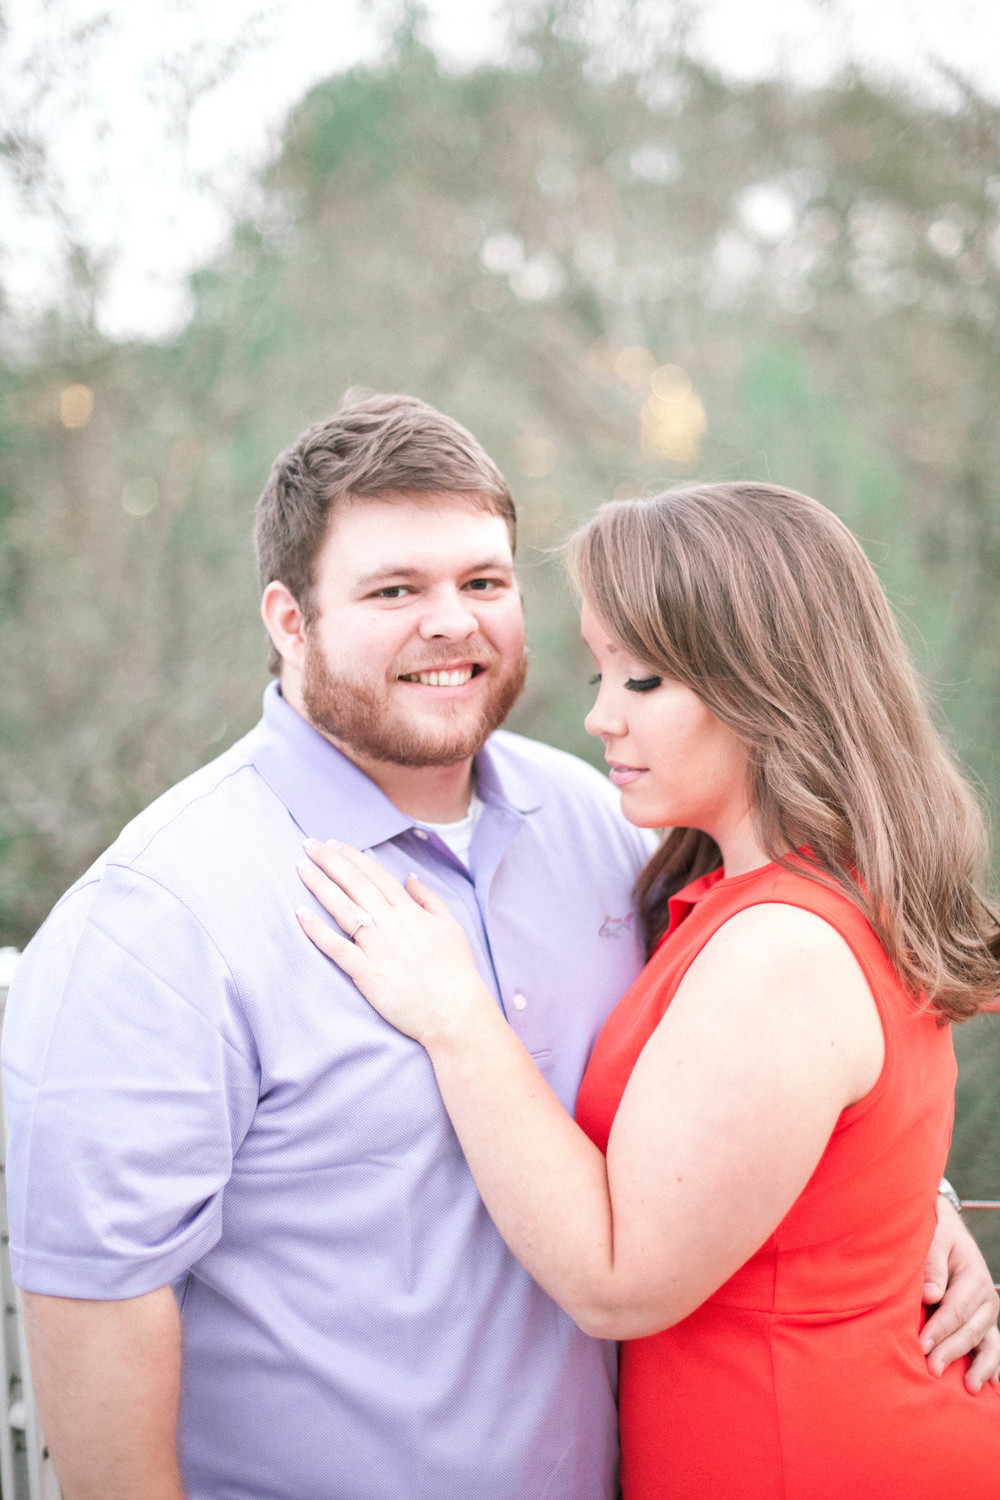 zach_gabbie_engagement_poured_out_photography-66.jpg